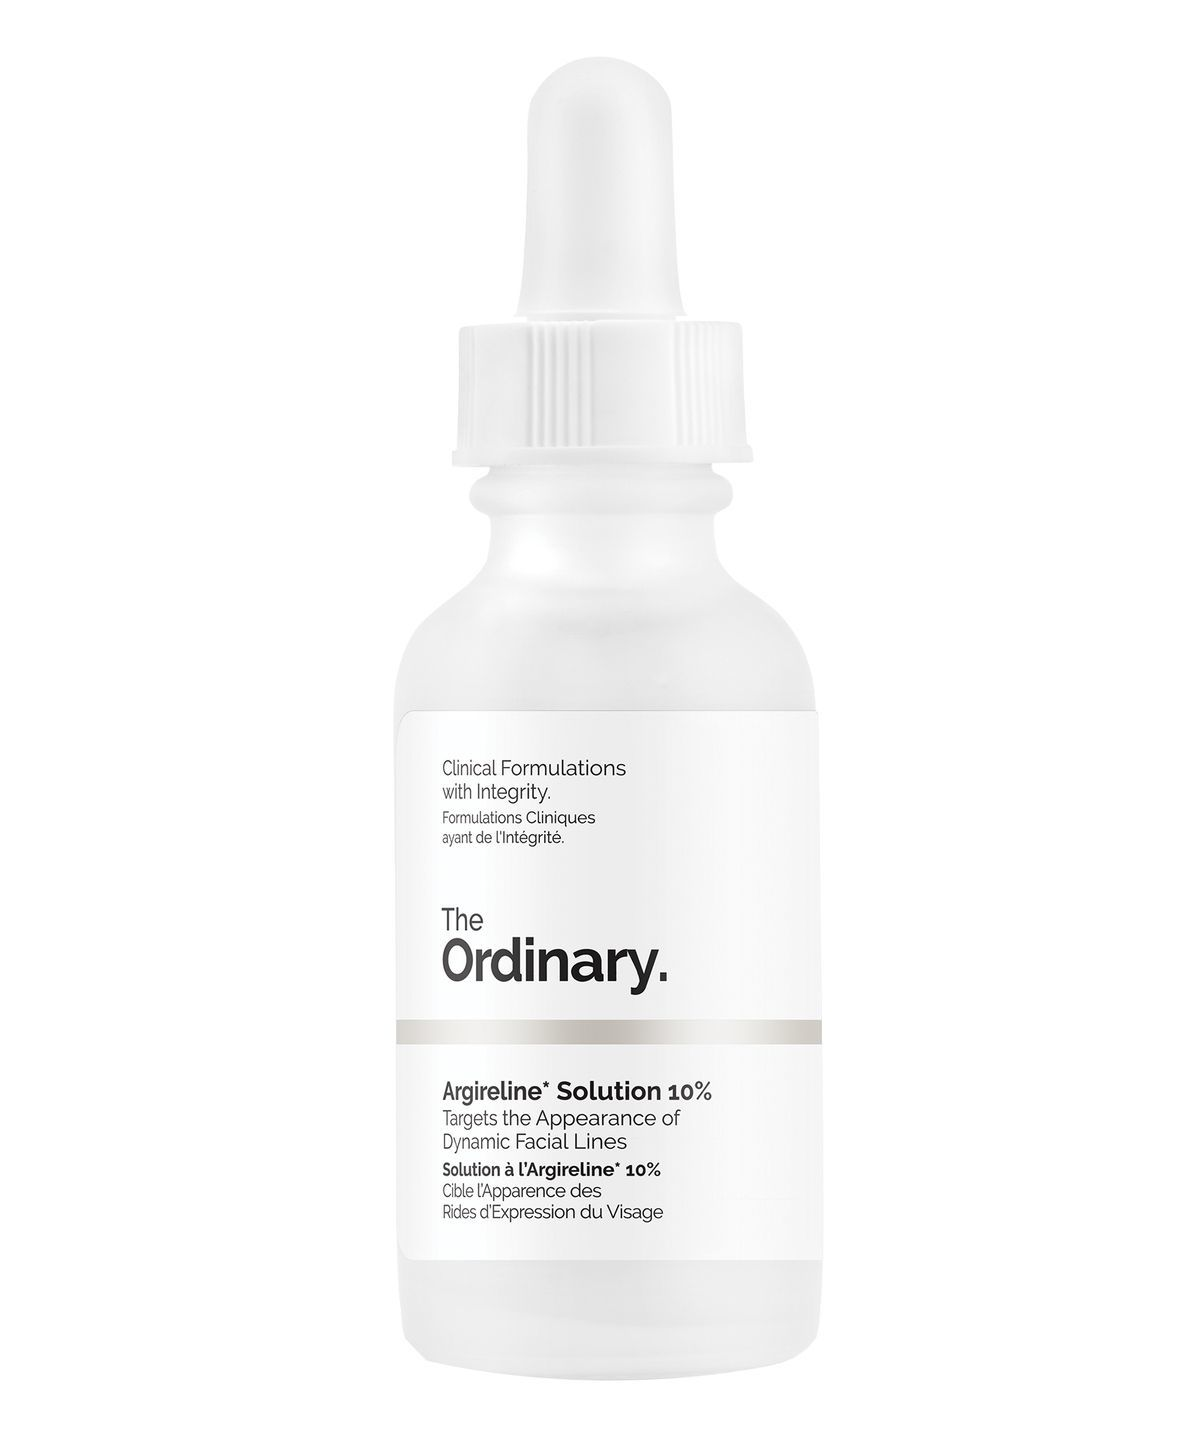 The Ordinary Argireline Solution 10% сыворотка для лица 30мл